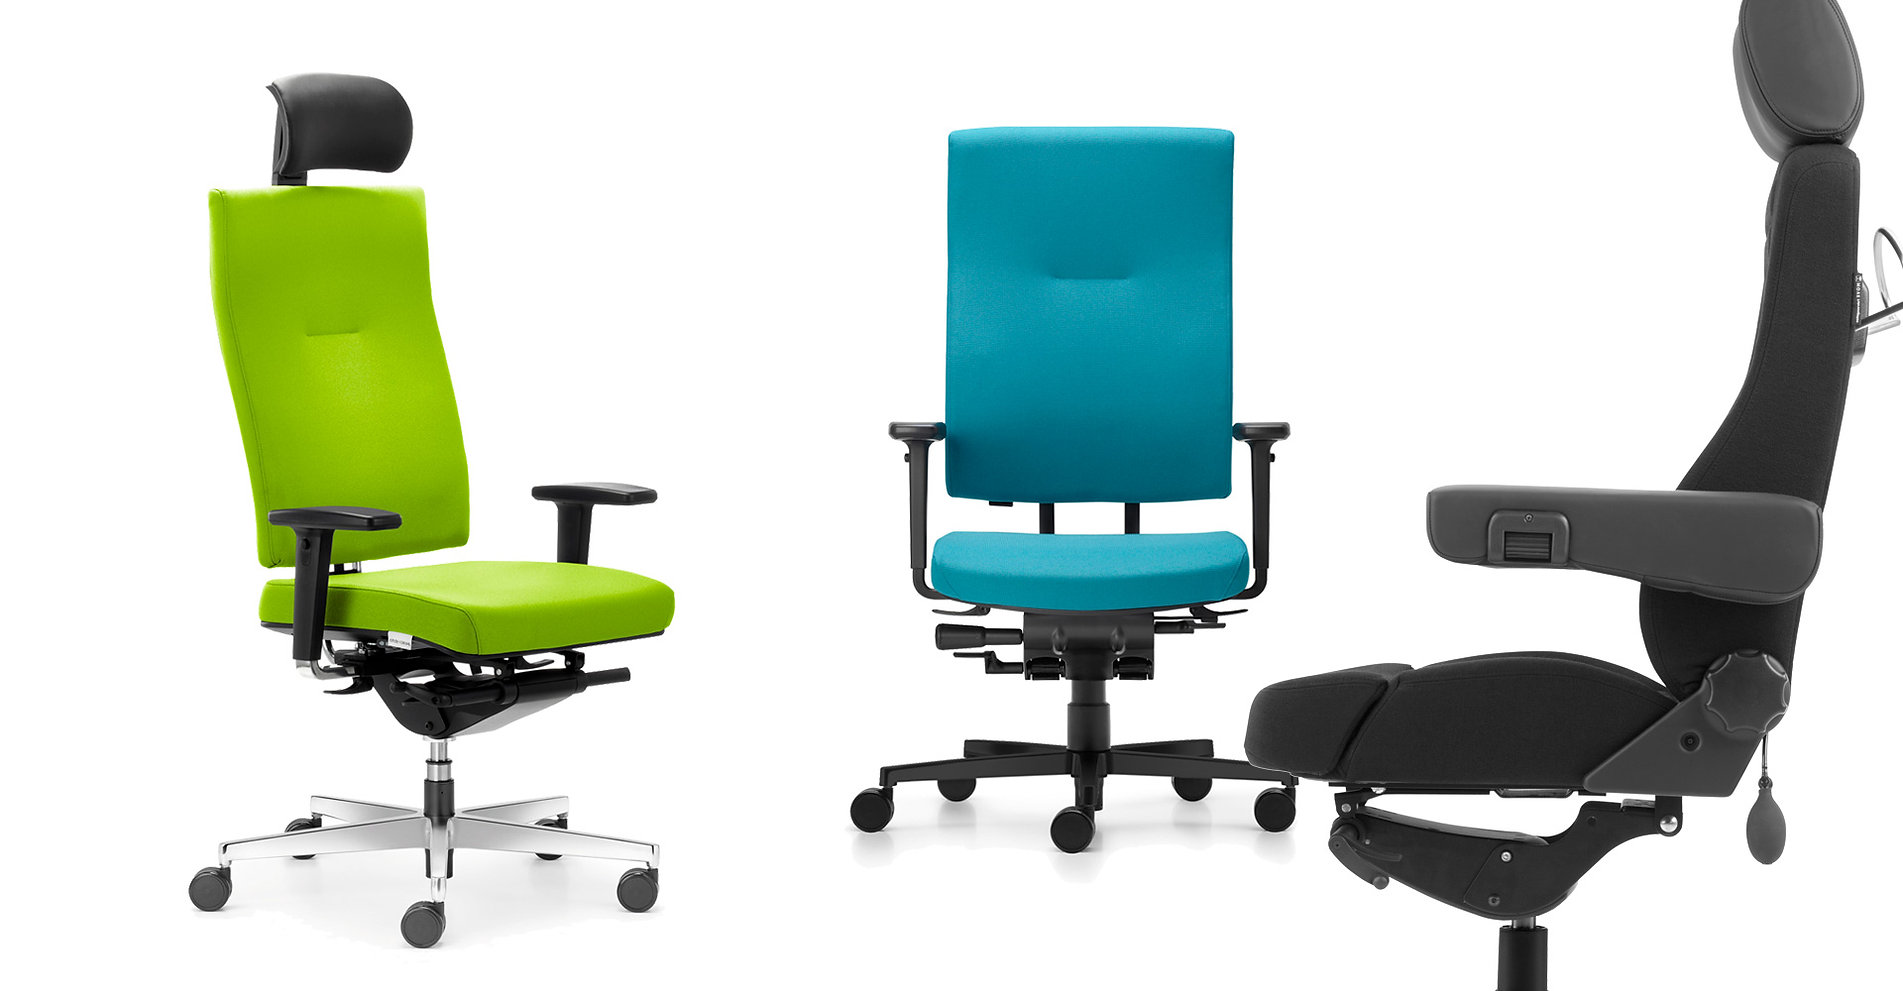 Xpendo_Operator_24_Big_Office_Chairs